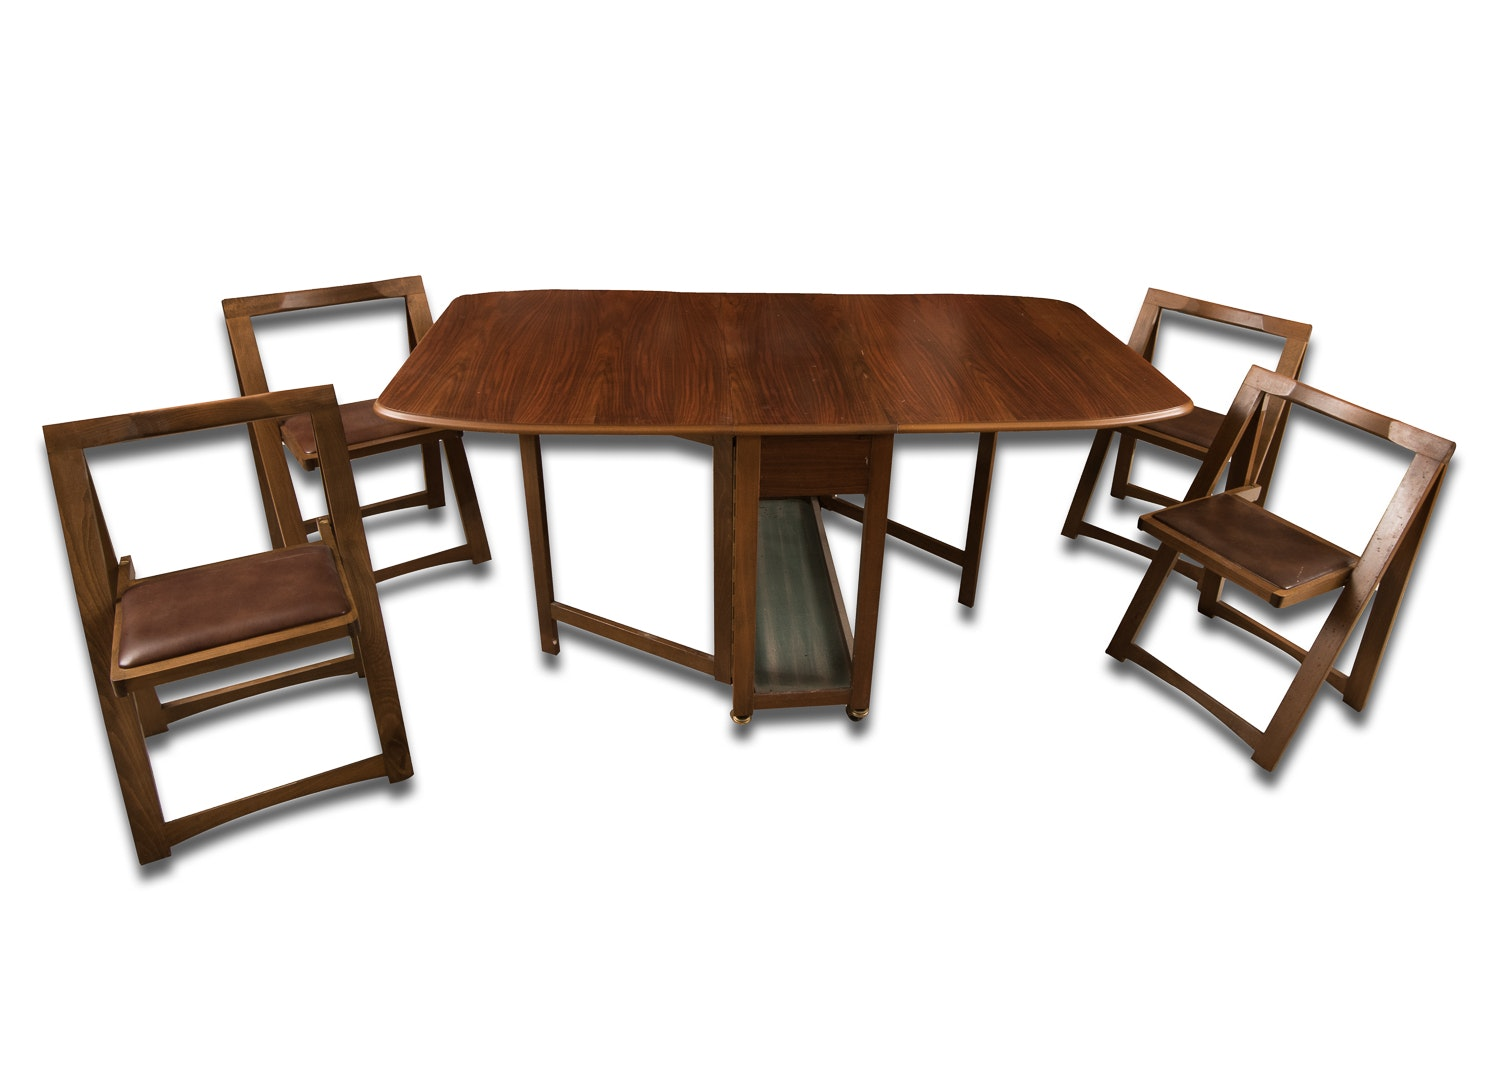 Fresh Unique Drop Leaf Dining Table And 4 ChairsSmall  : SGDEN008 1032jpgixlibrb 11 from www.madepl.com size 880 x 906 jpeg 73kB